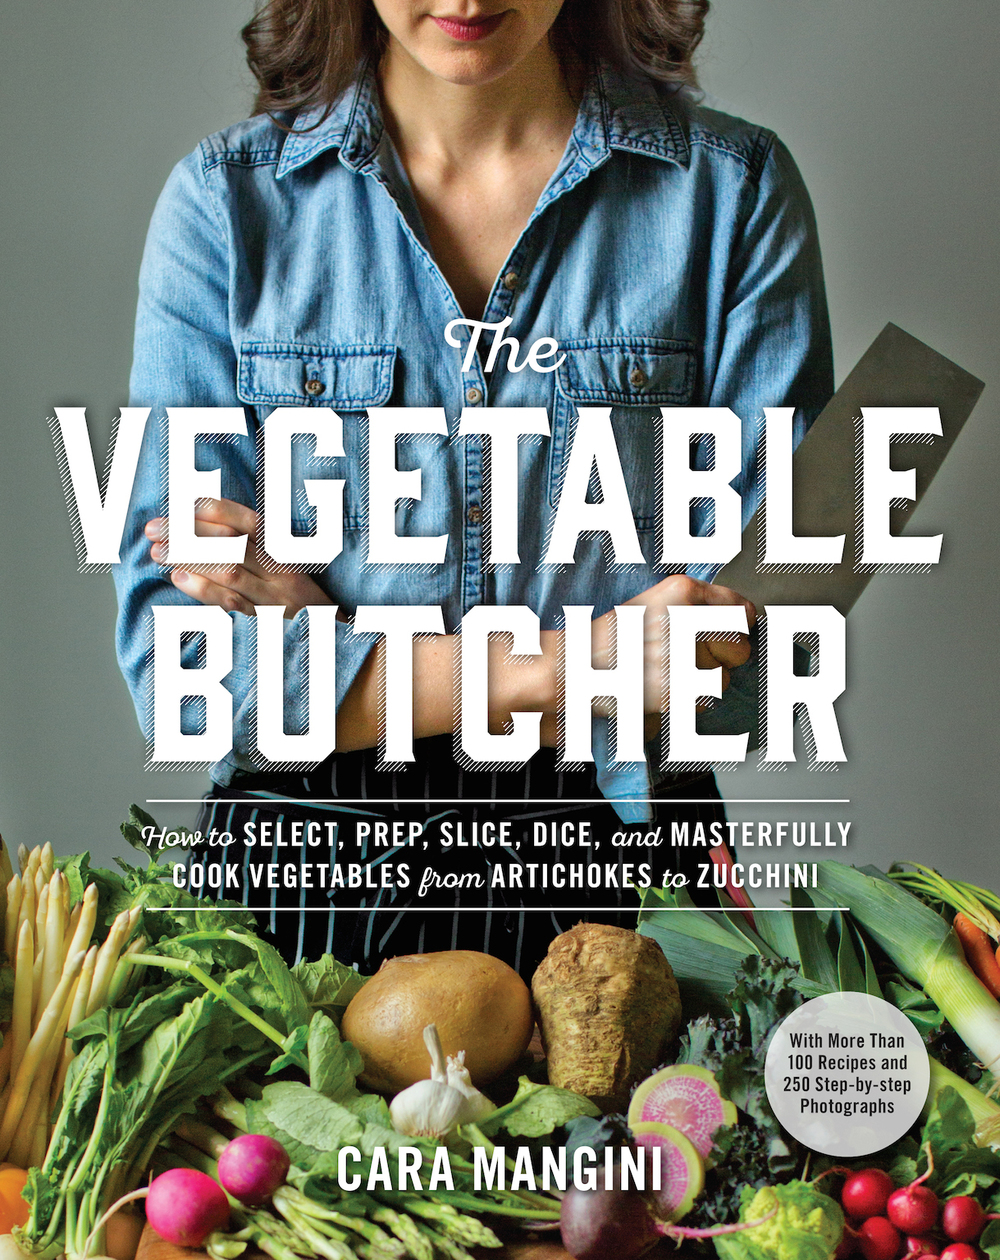 Cara Mangini's new cookbook, The Vegetable Butcher, releases April 19.